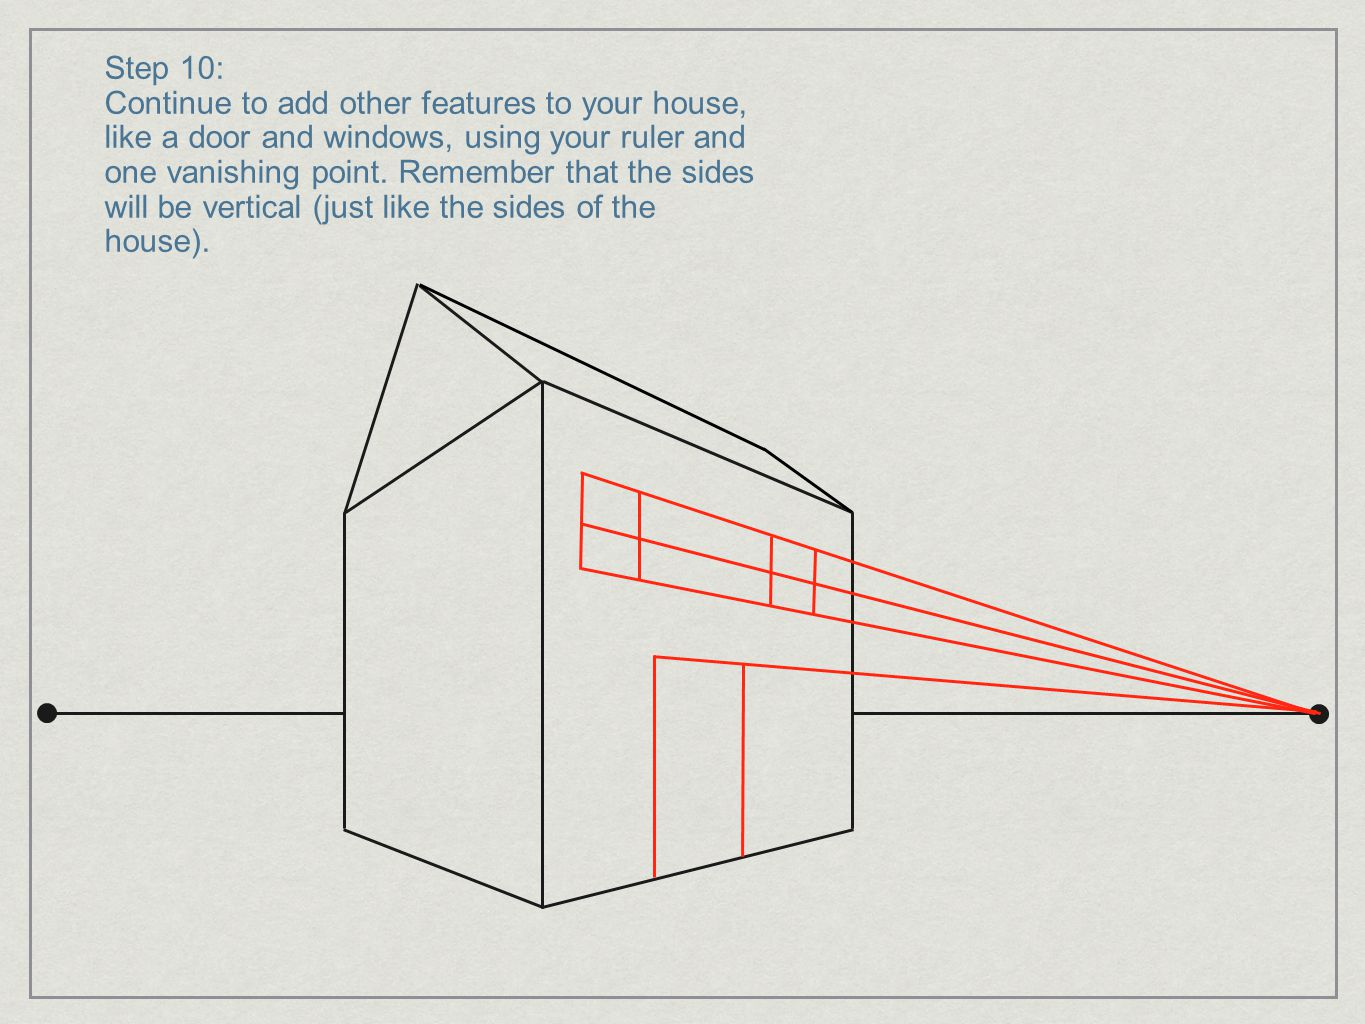 Step 10: Continue to add other features to your house, like a door and windows, using your ruler and one vanishing point. Remember that the sides will